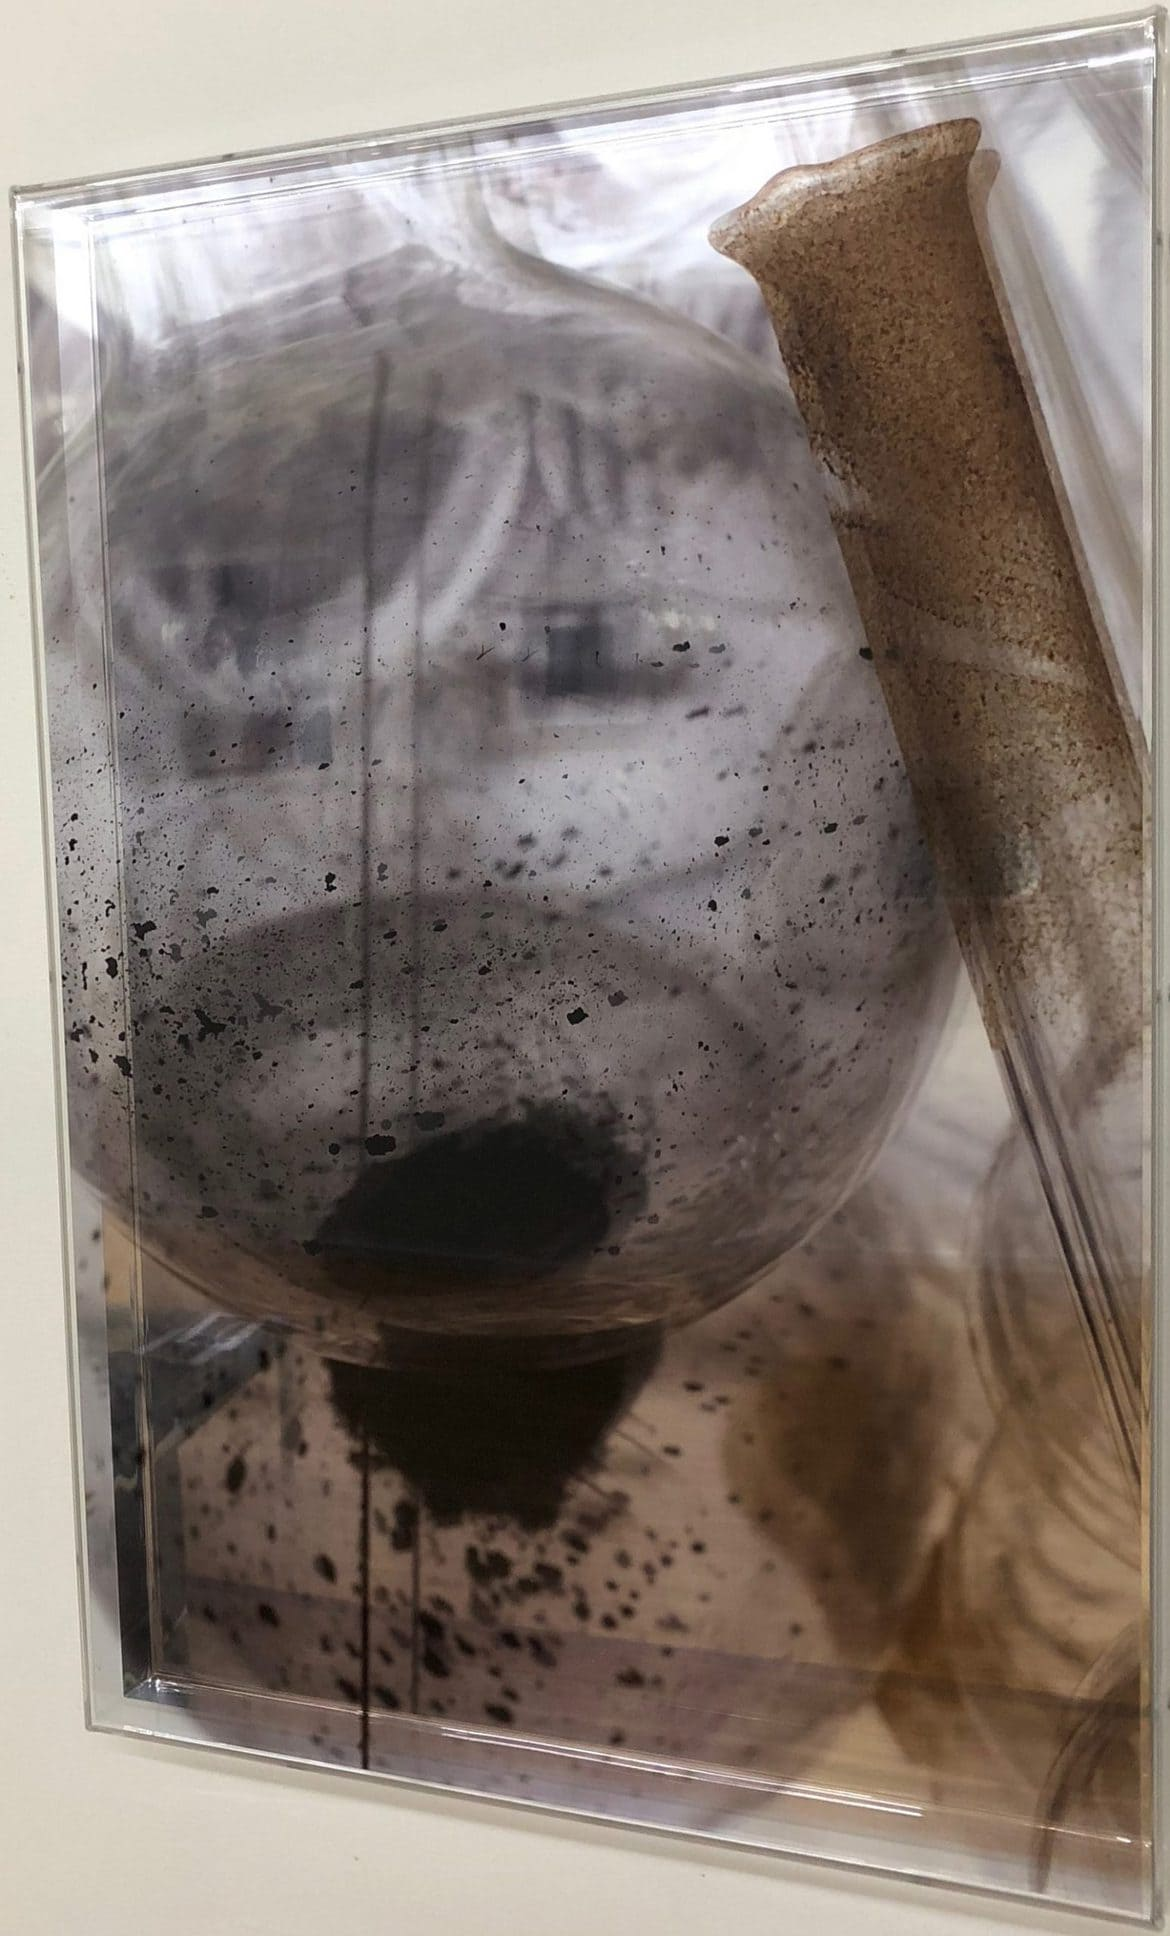 'Waiting - The Fugitives no 9', 2010, duraclear on acrylic with mirror and oil pigment, 50 x 35 cm